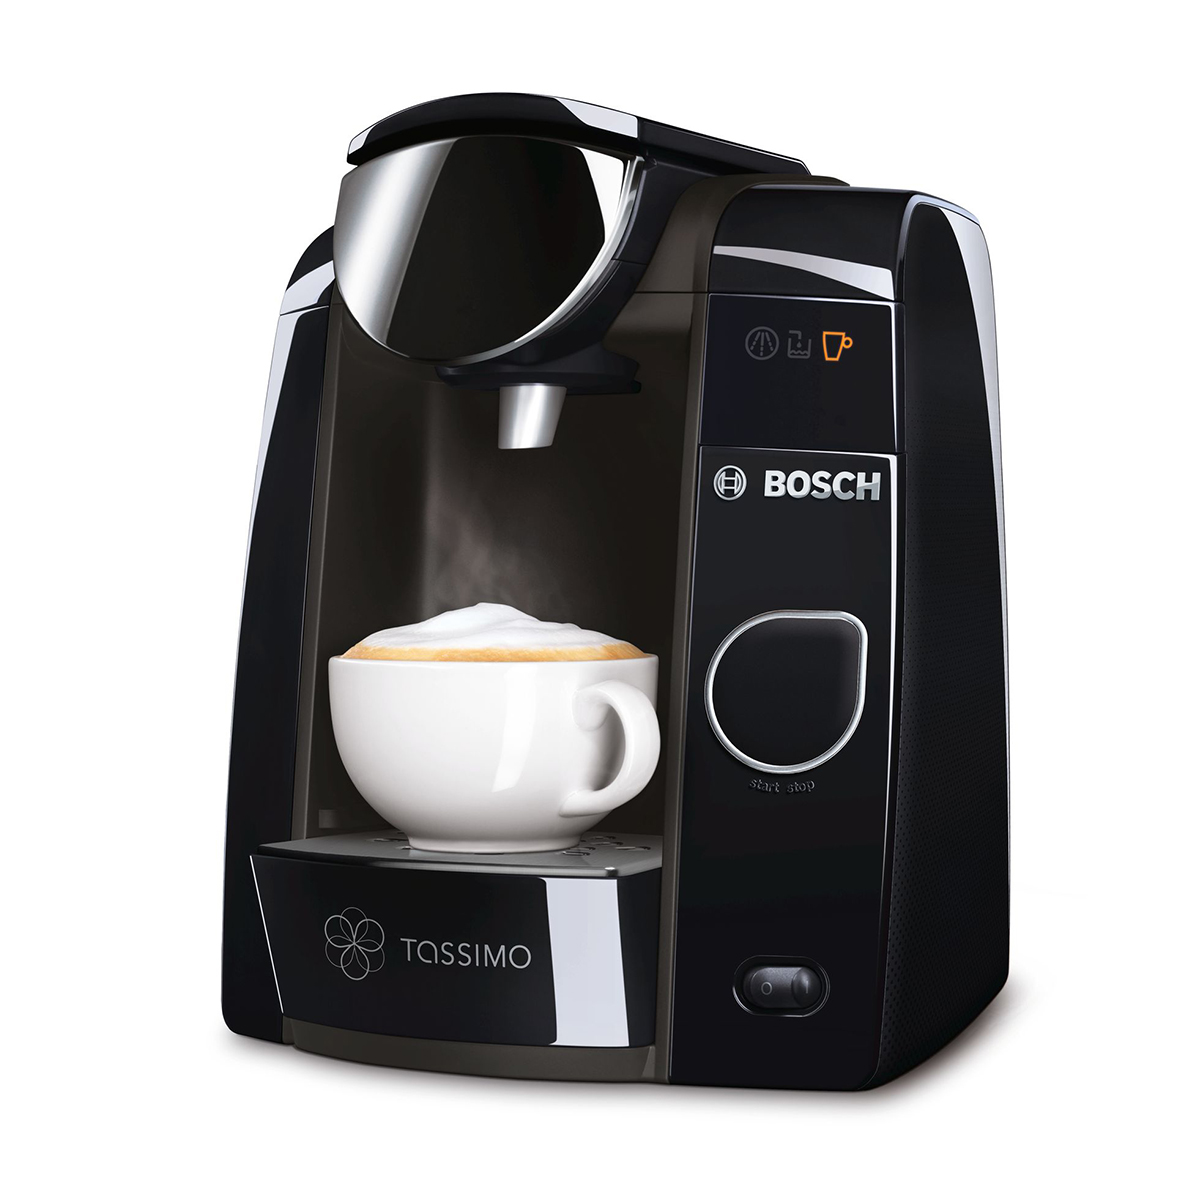 bosch coffee machine coffee maker tassimo joy multi beverage. Black Bedroom Furniture Sets. Home Design Ideas